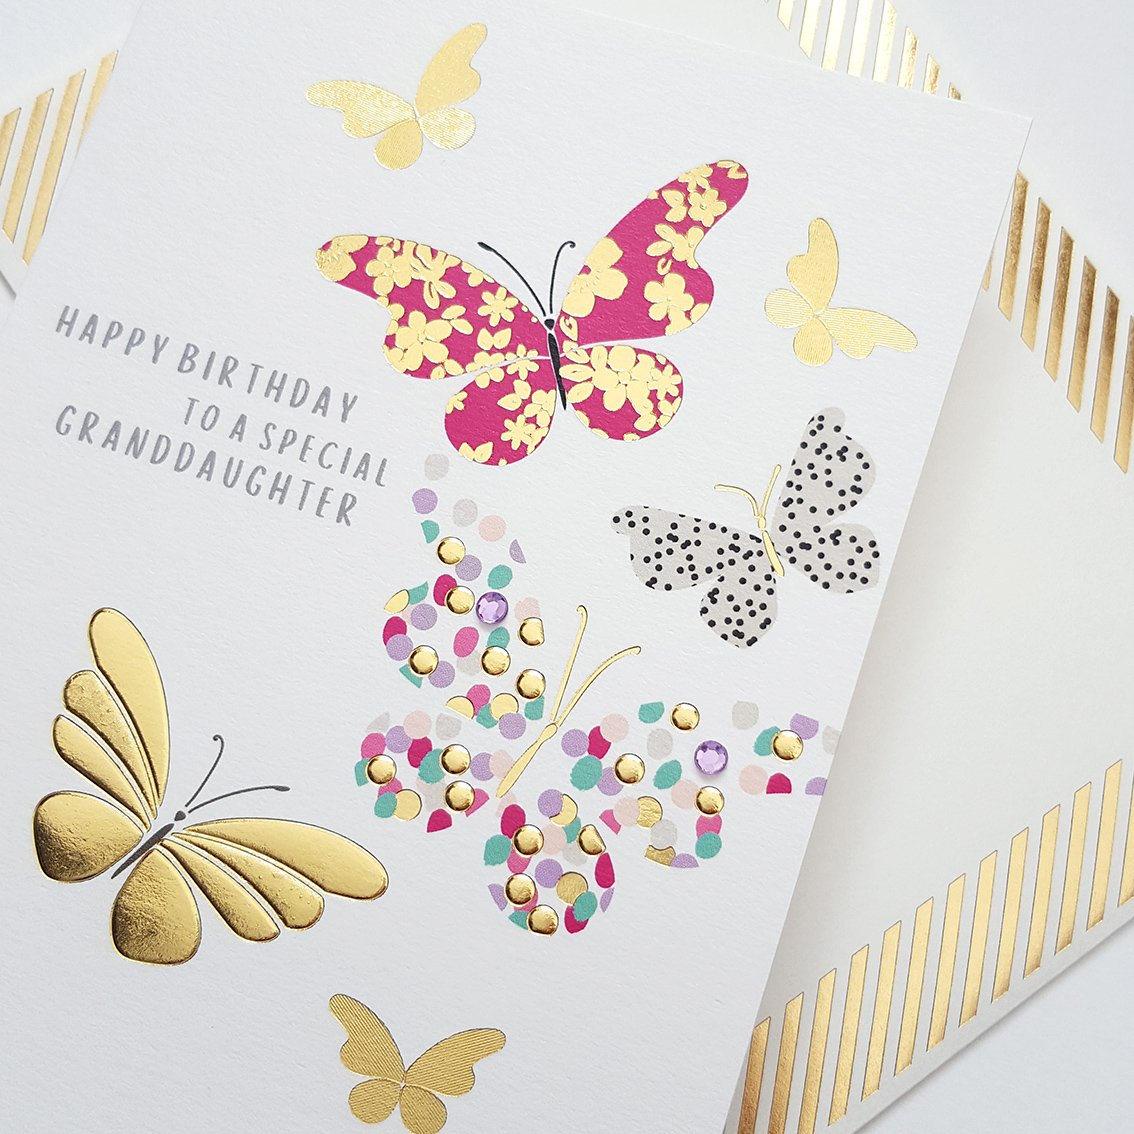 buy rosanna rossi birthday and occasion cards online 30% off promotion sale on birthday wedding anniversary baby special occasions cards